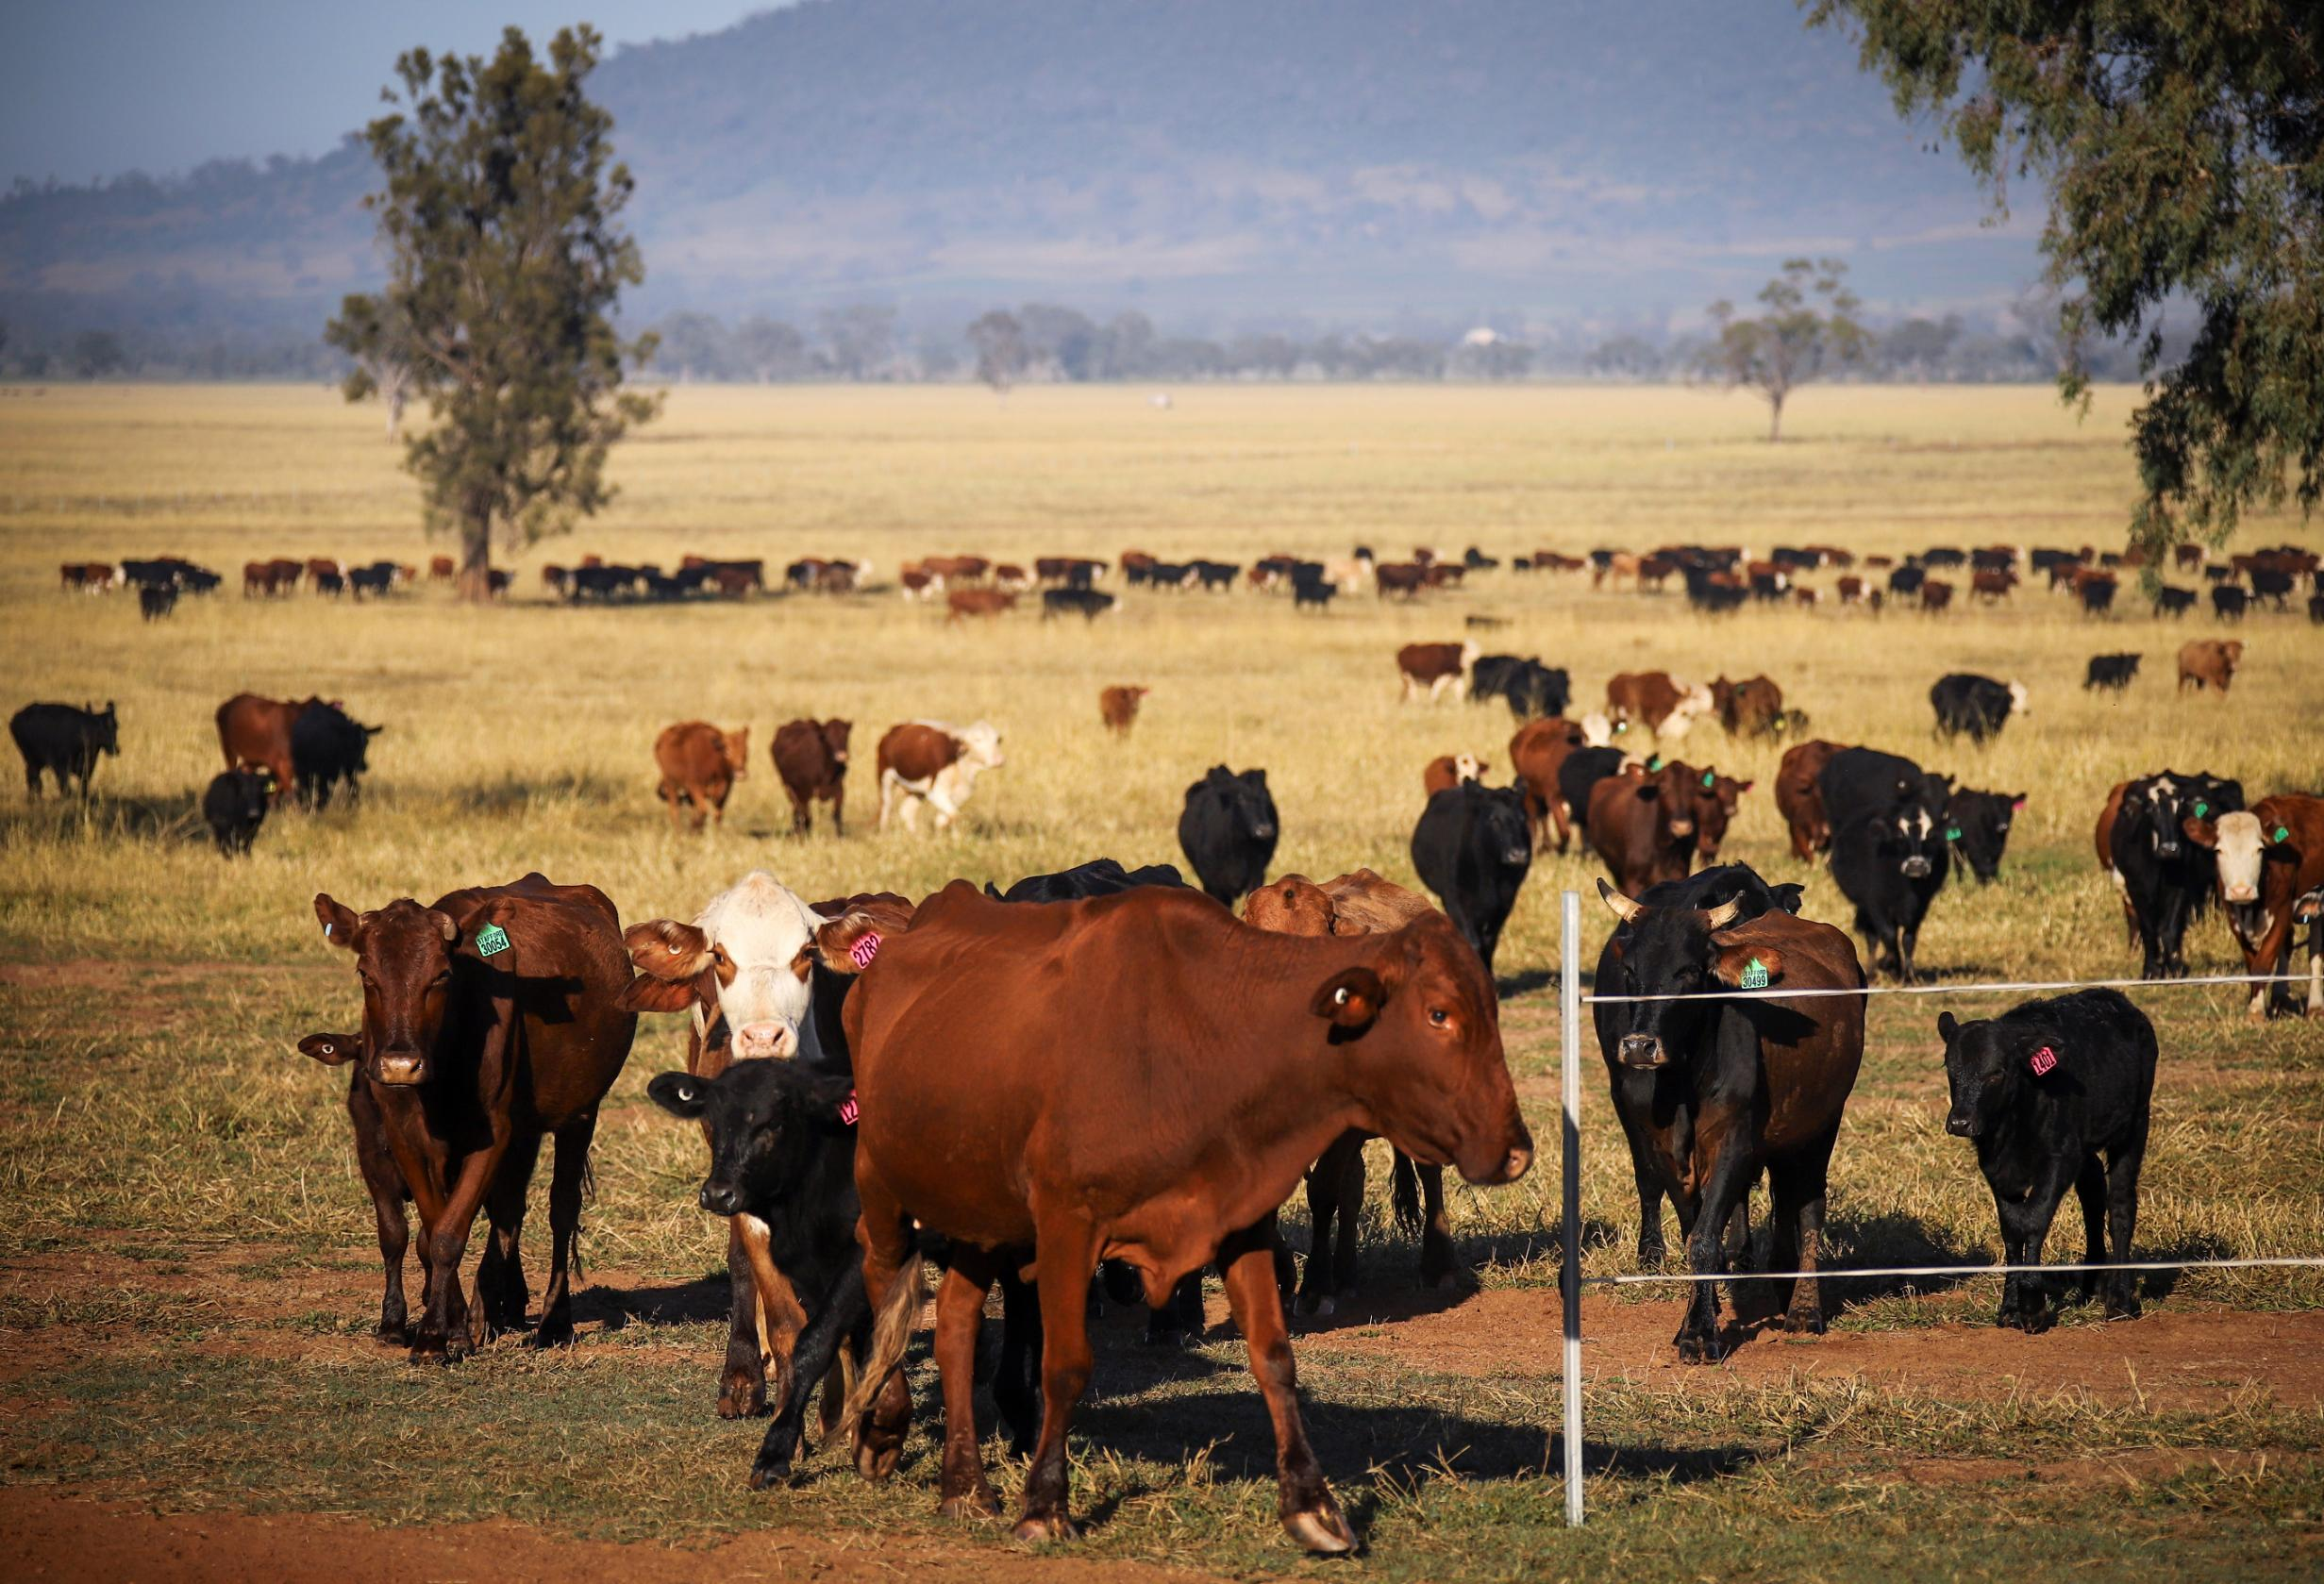 The world's methane emissions are at a record high, and burping cows are driving the rise